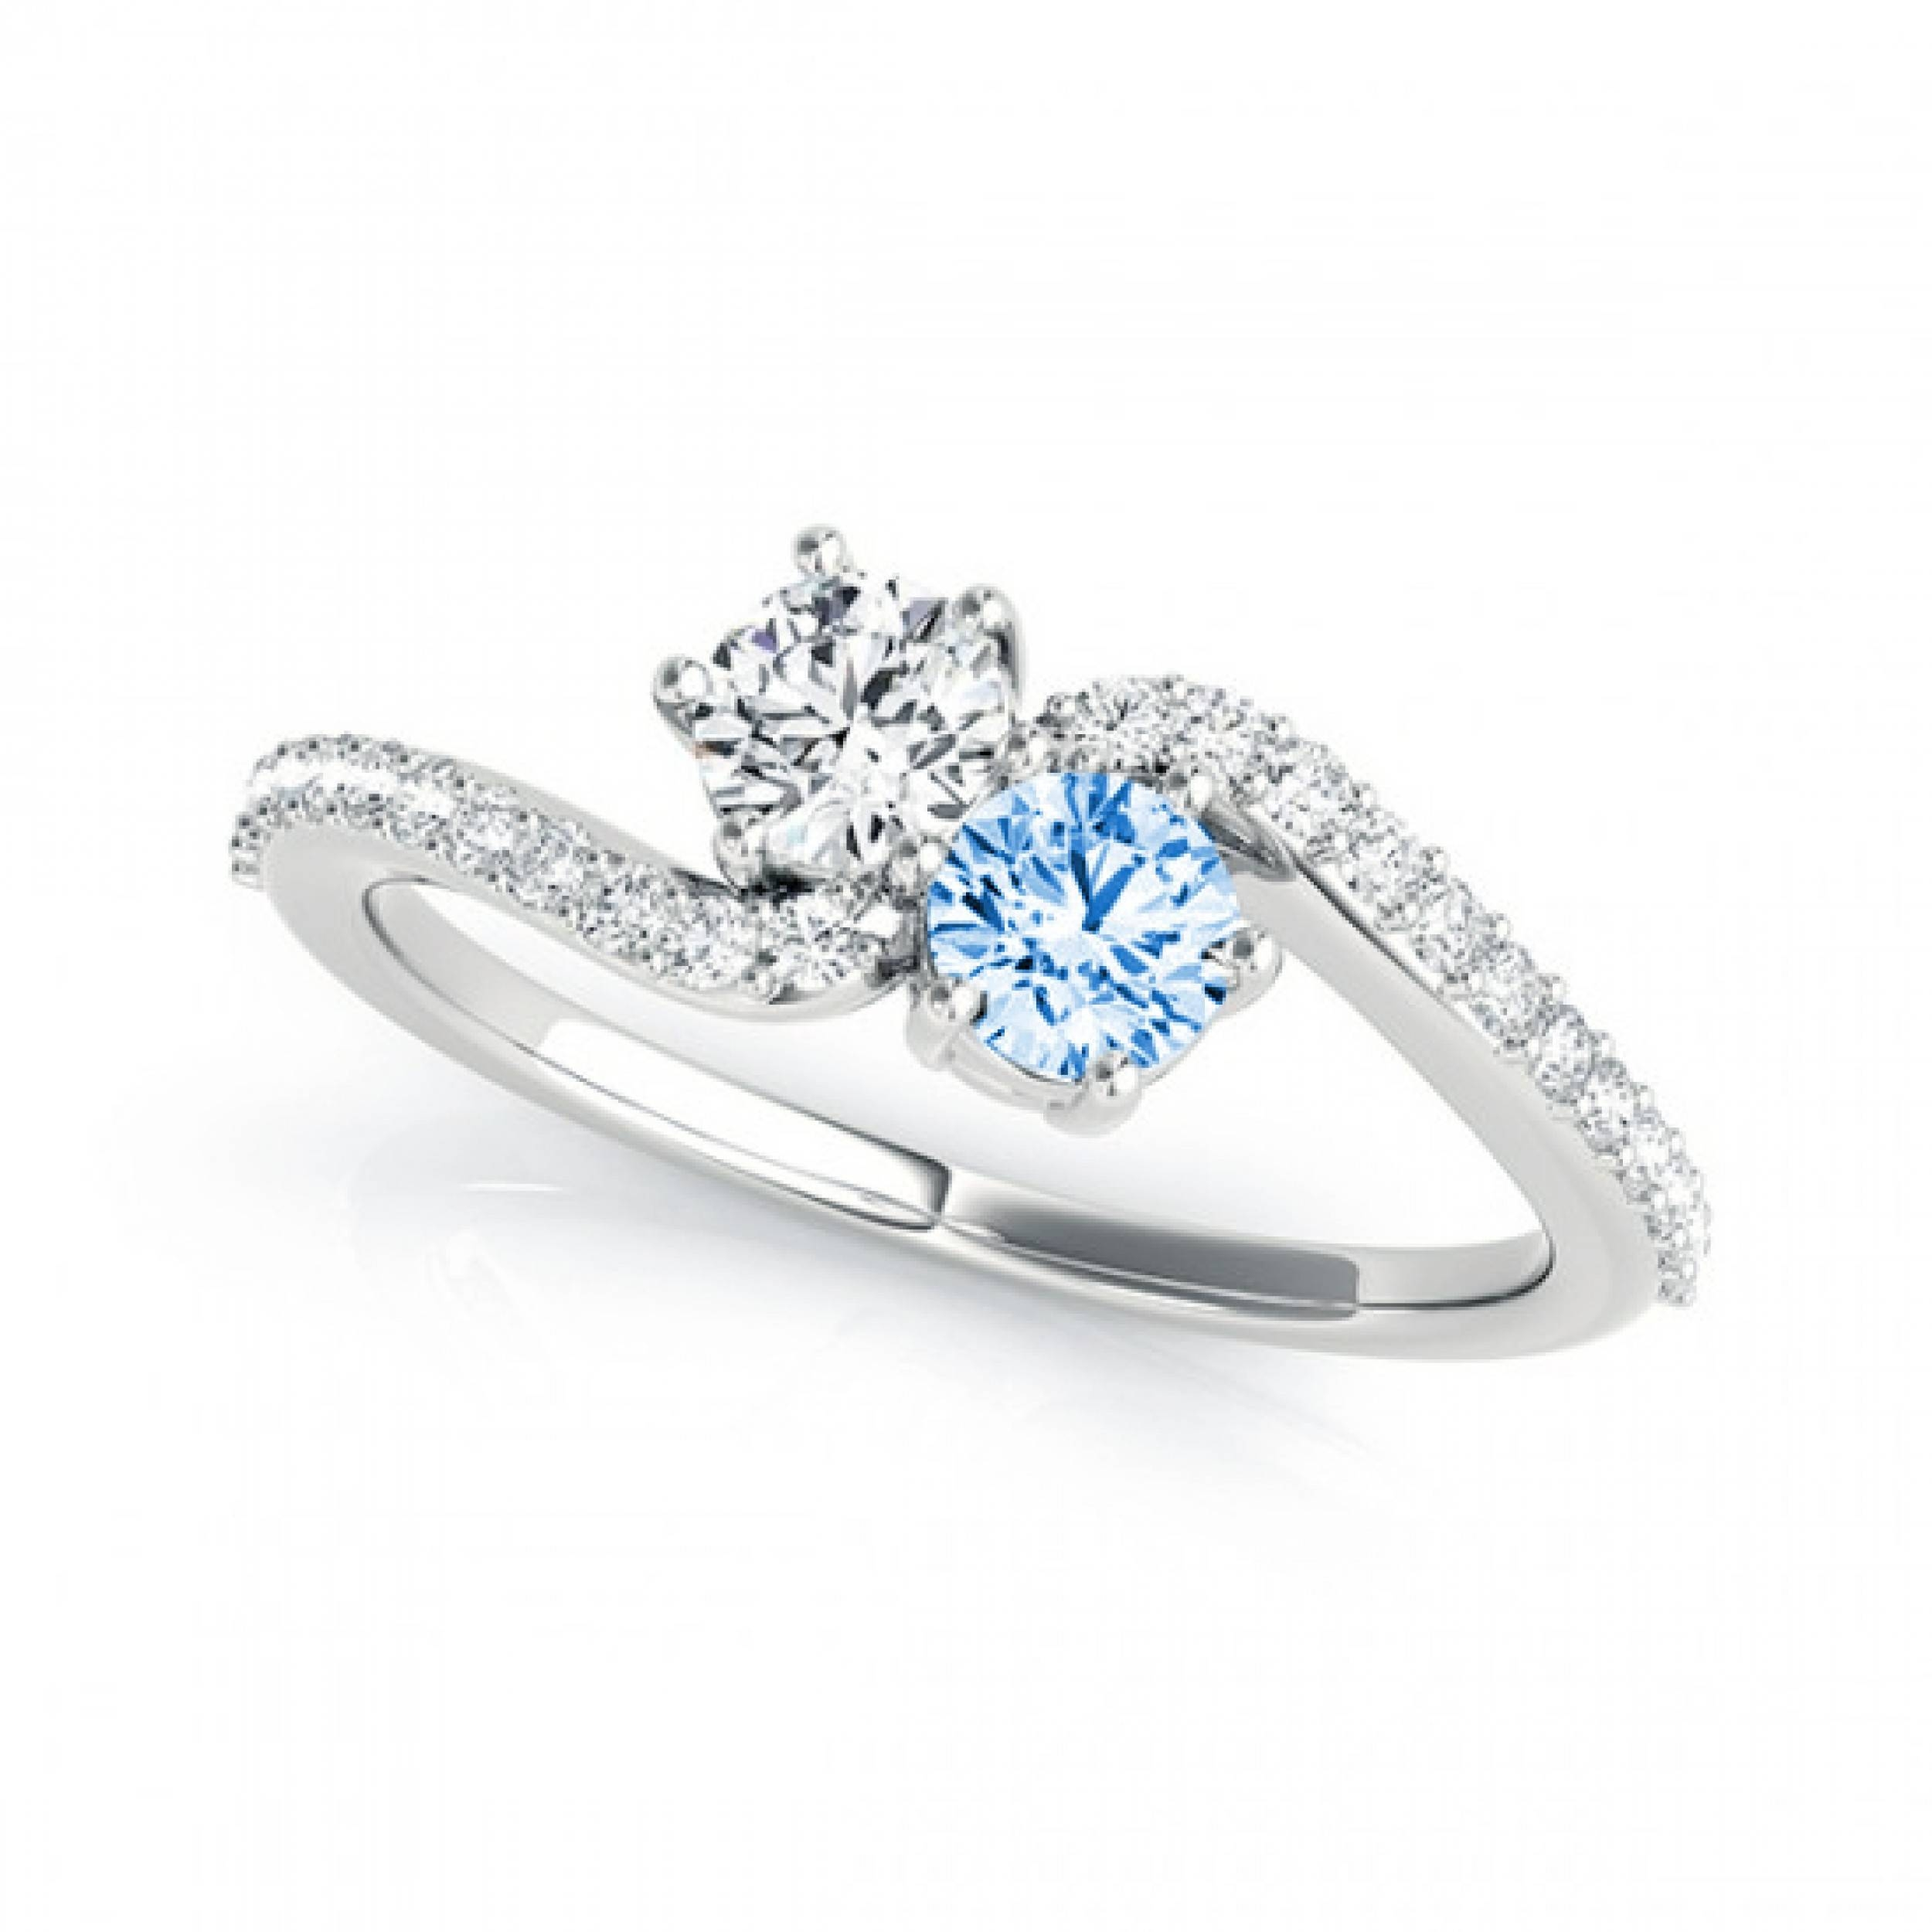 b dia platinum engagement for ring mg stone rings sale at three diamond jewelry master blue j sapph id